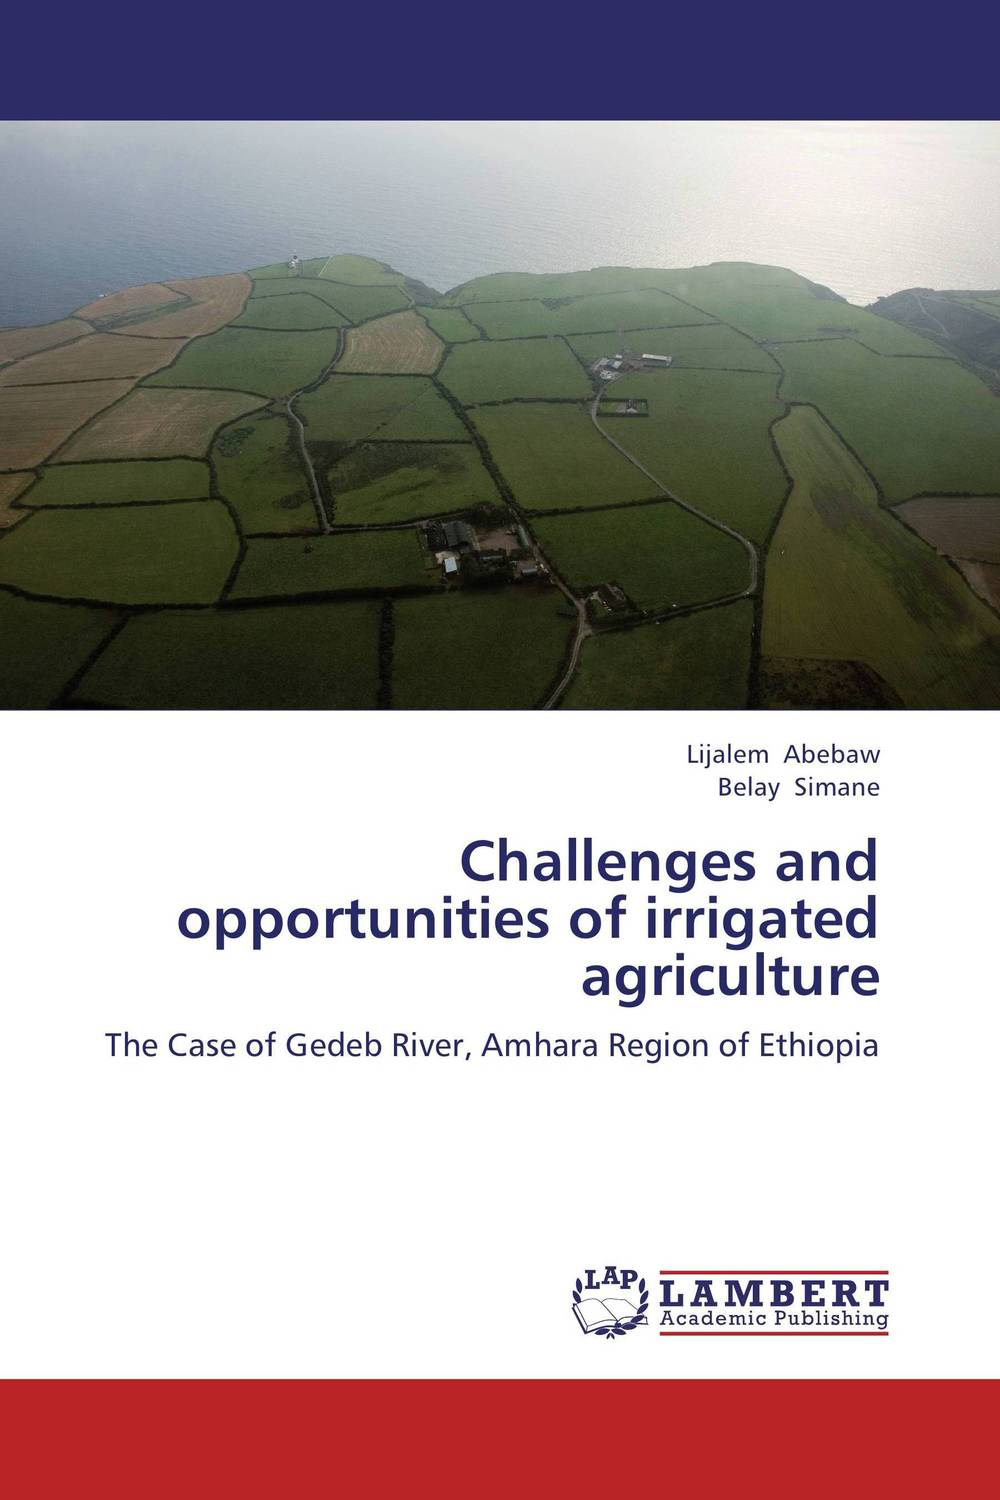 Challenges and opportunities of irrigated agriculture opportunities for and constraints on crop production